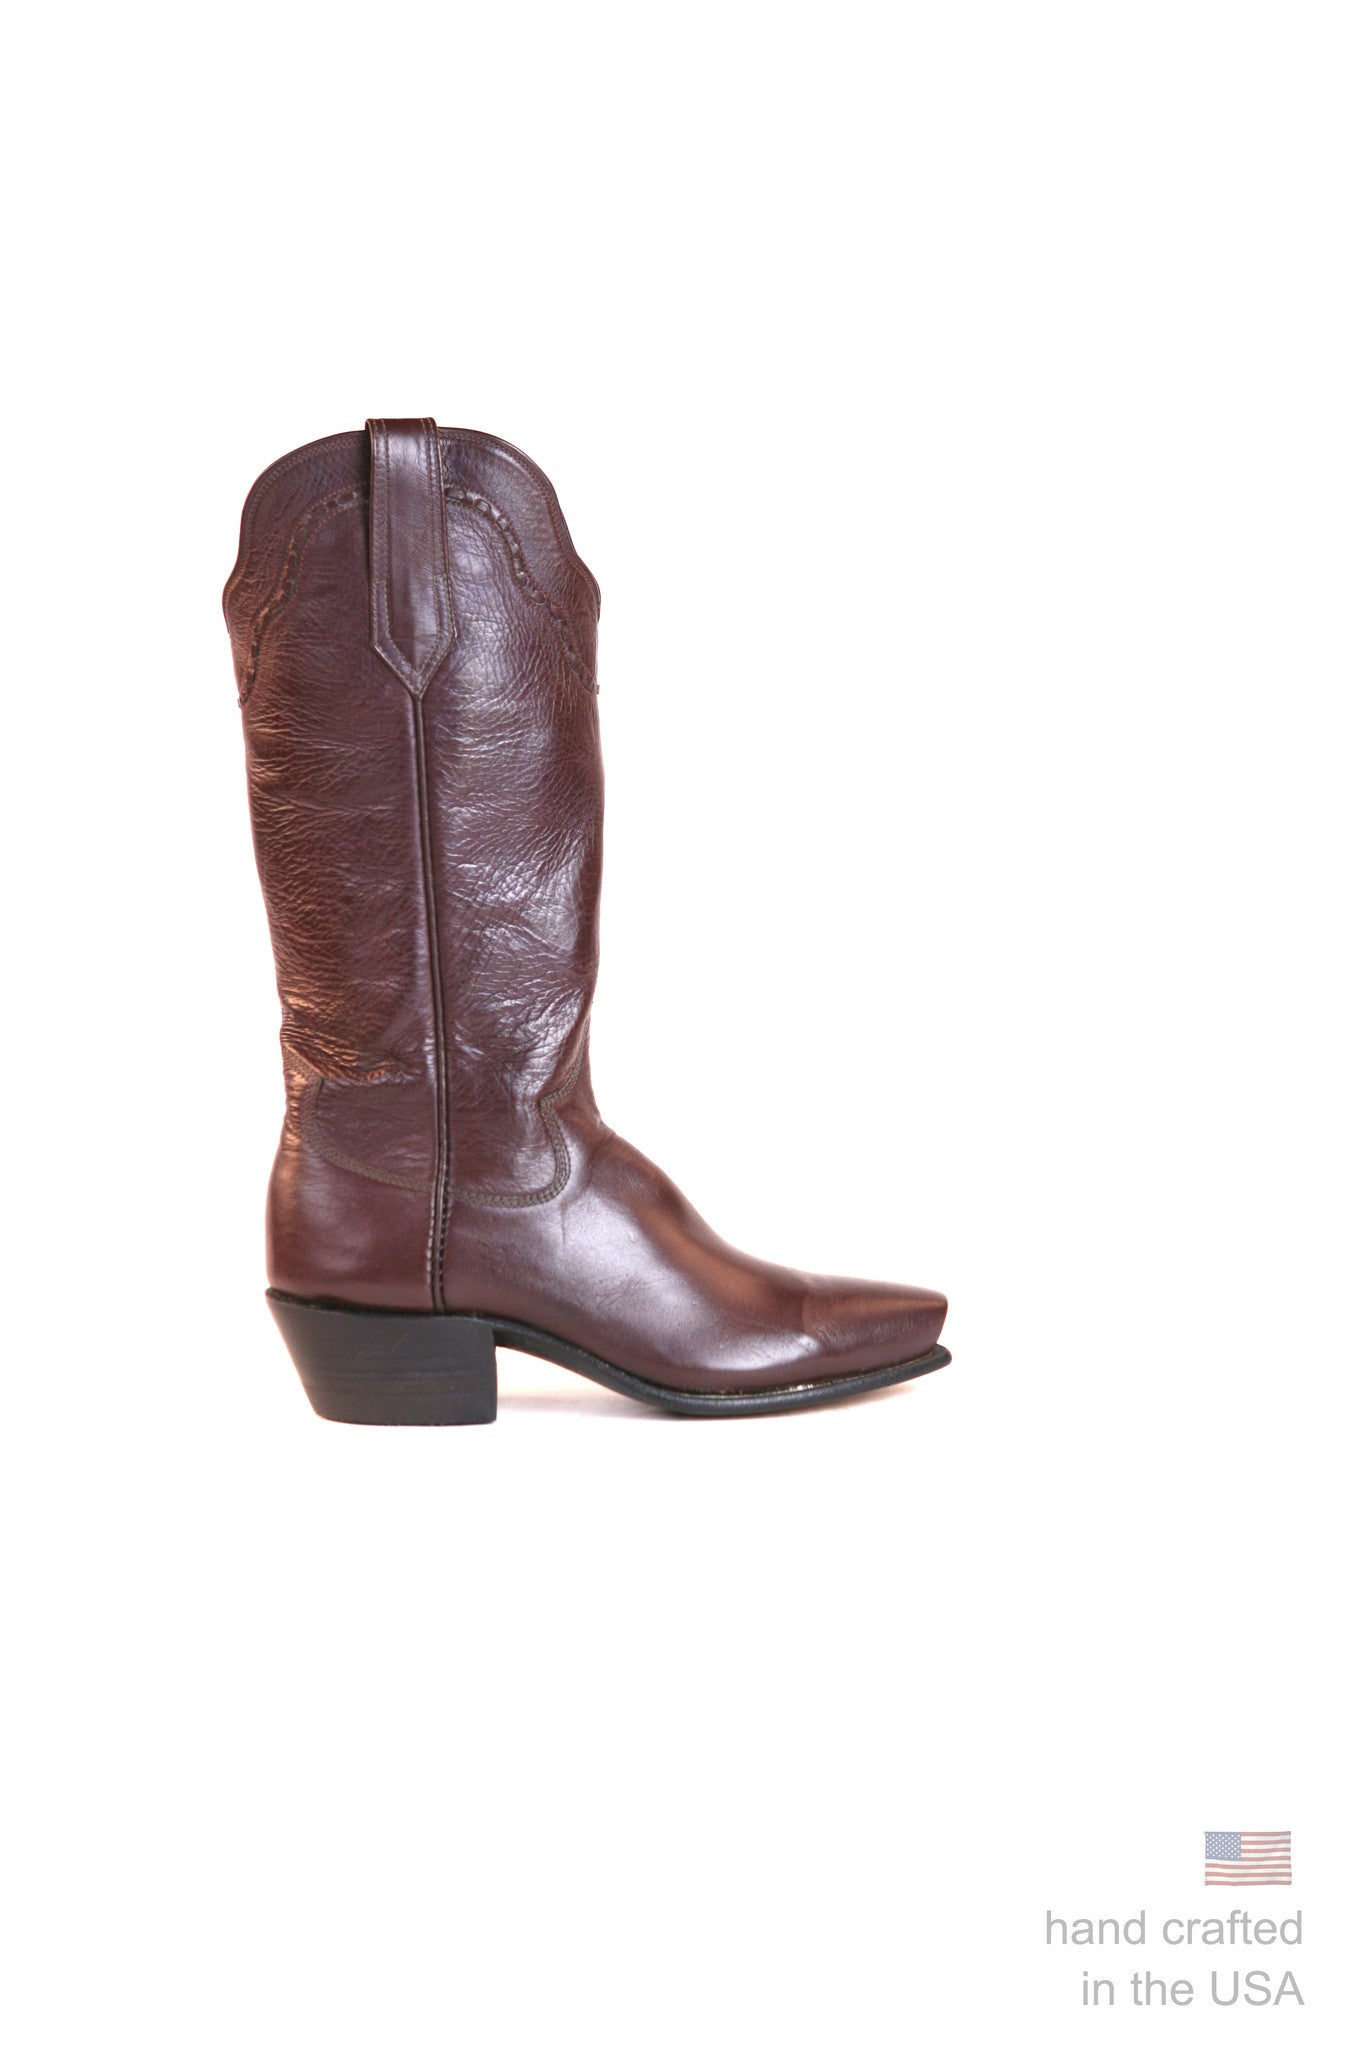 Singles: Boot 0068: Size 6.5 B